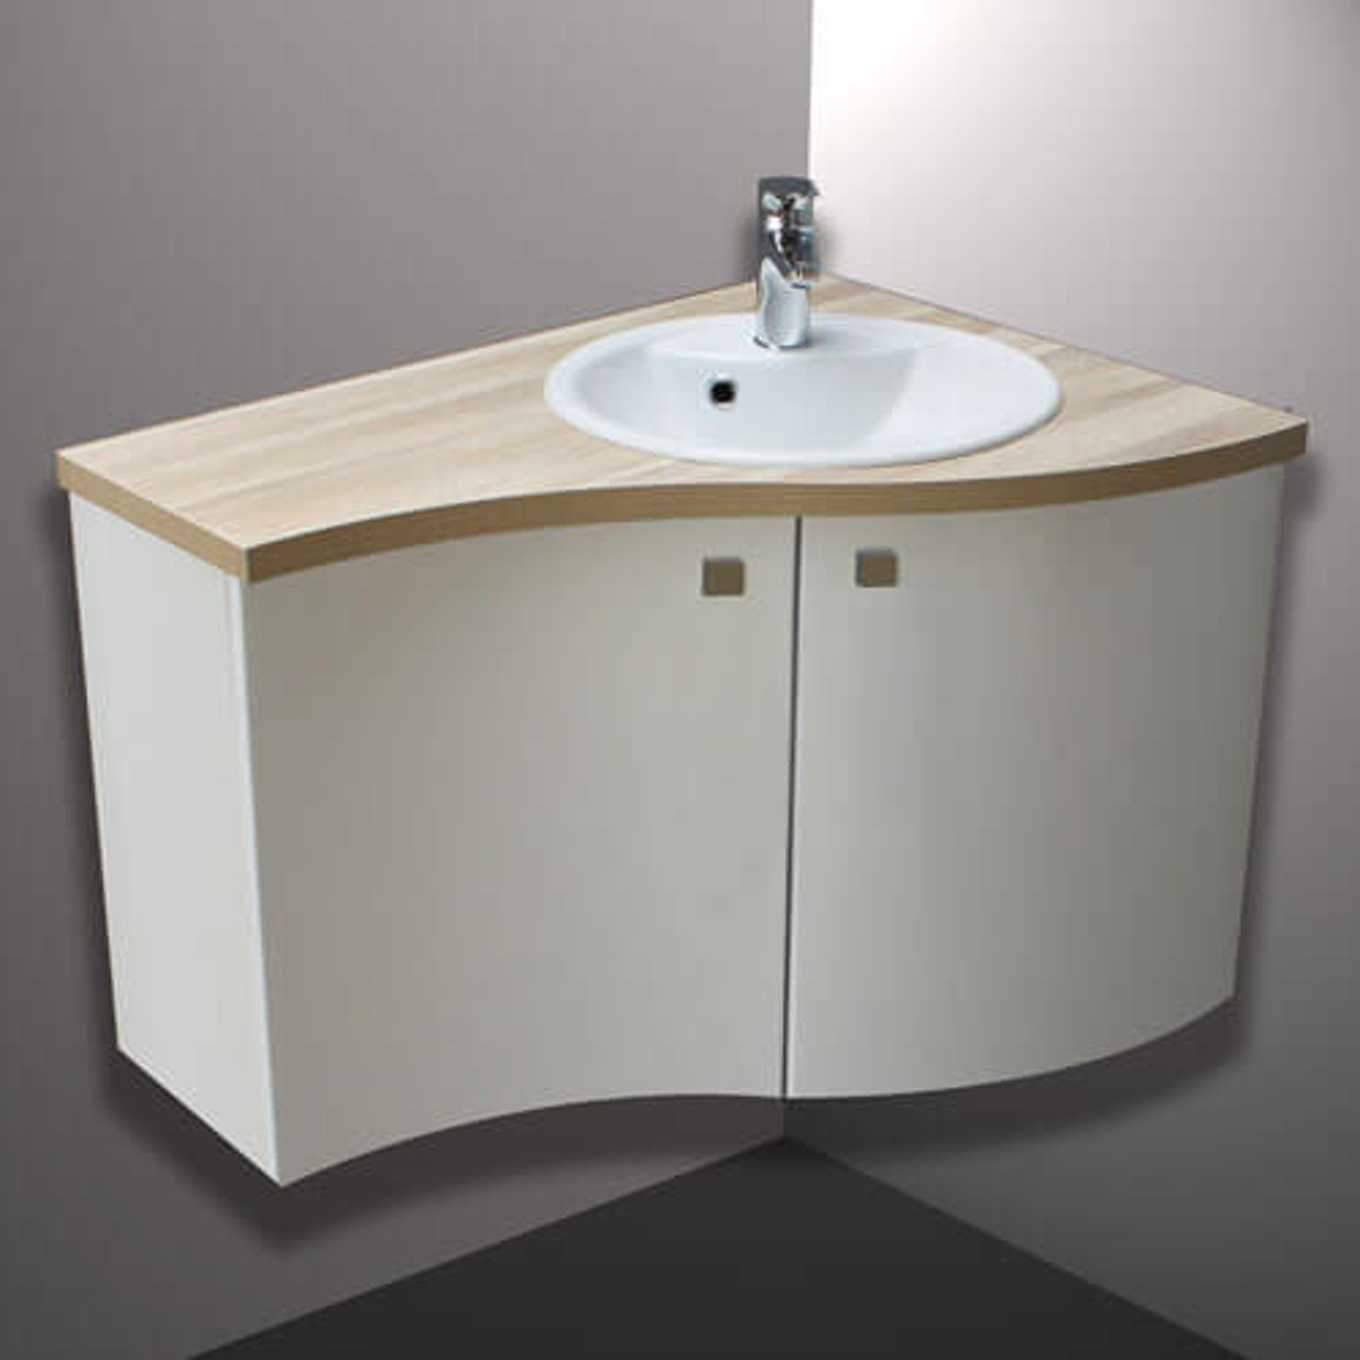 lavabo d 39 angle salle de bain avec meuble. Black Bedroom Furniture Sets. Home Design Ideas